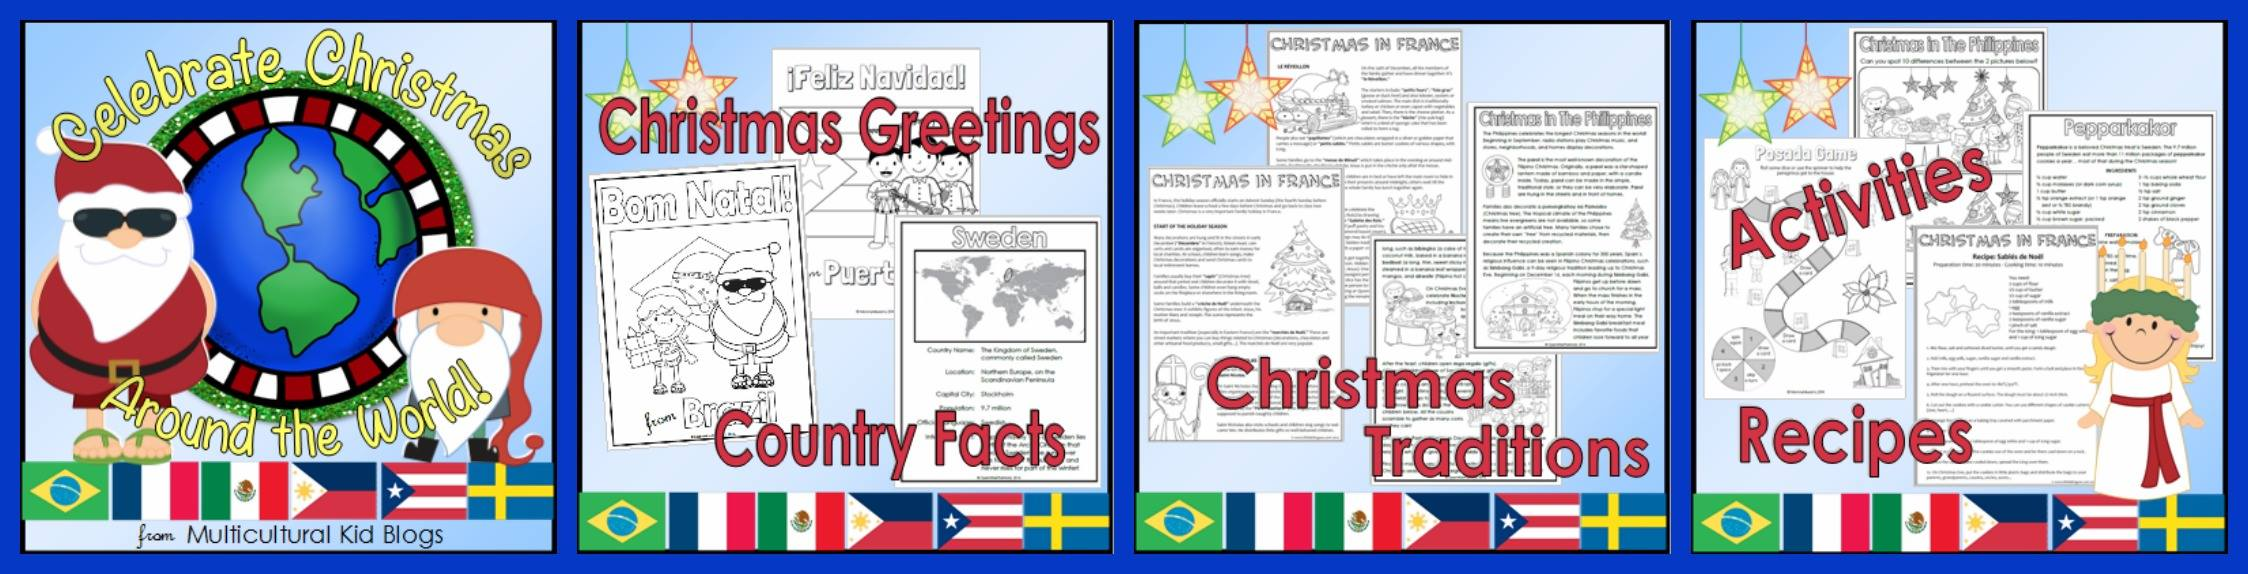 celebrate christmas around the world multicultural kid blogs printable pack